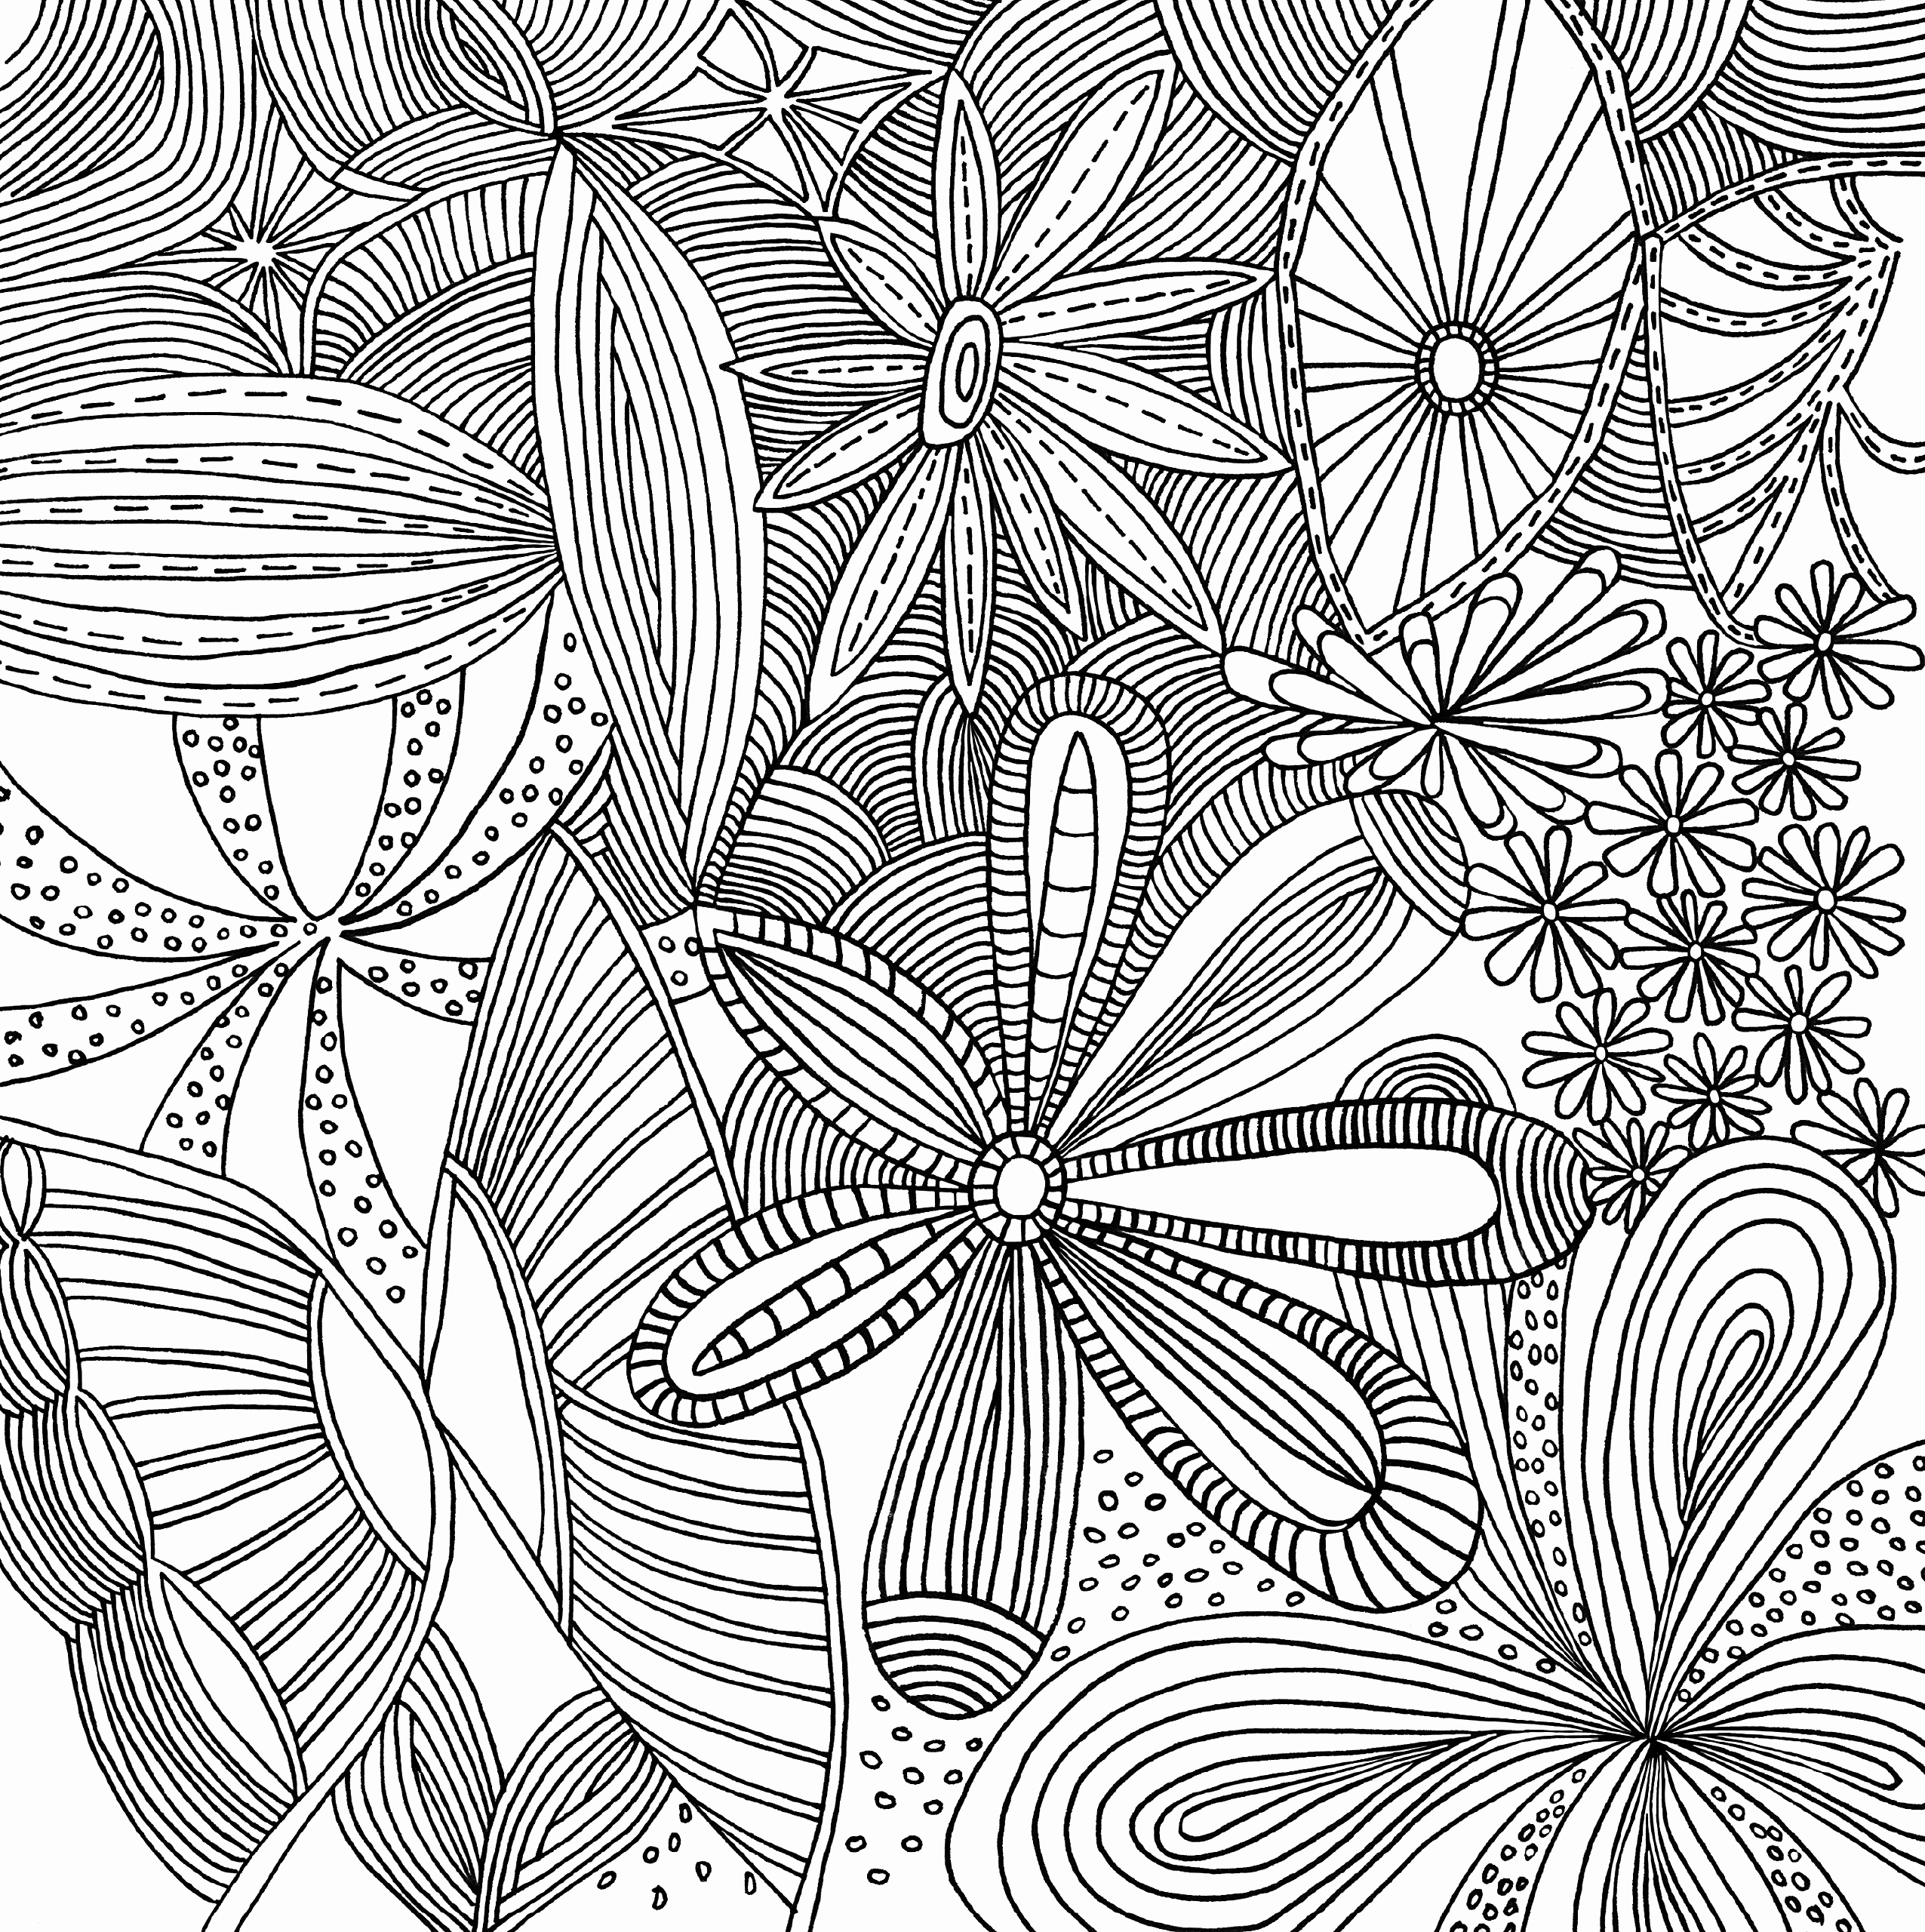 29 super coloring pages download - coloring sheets